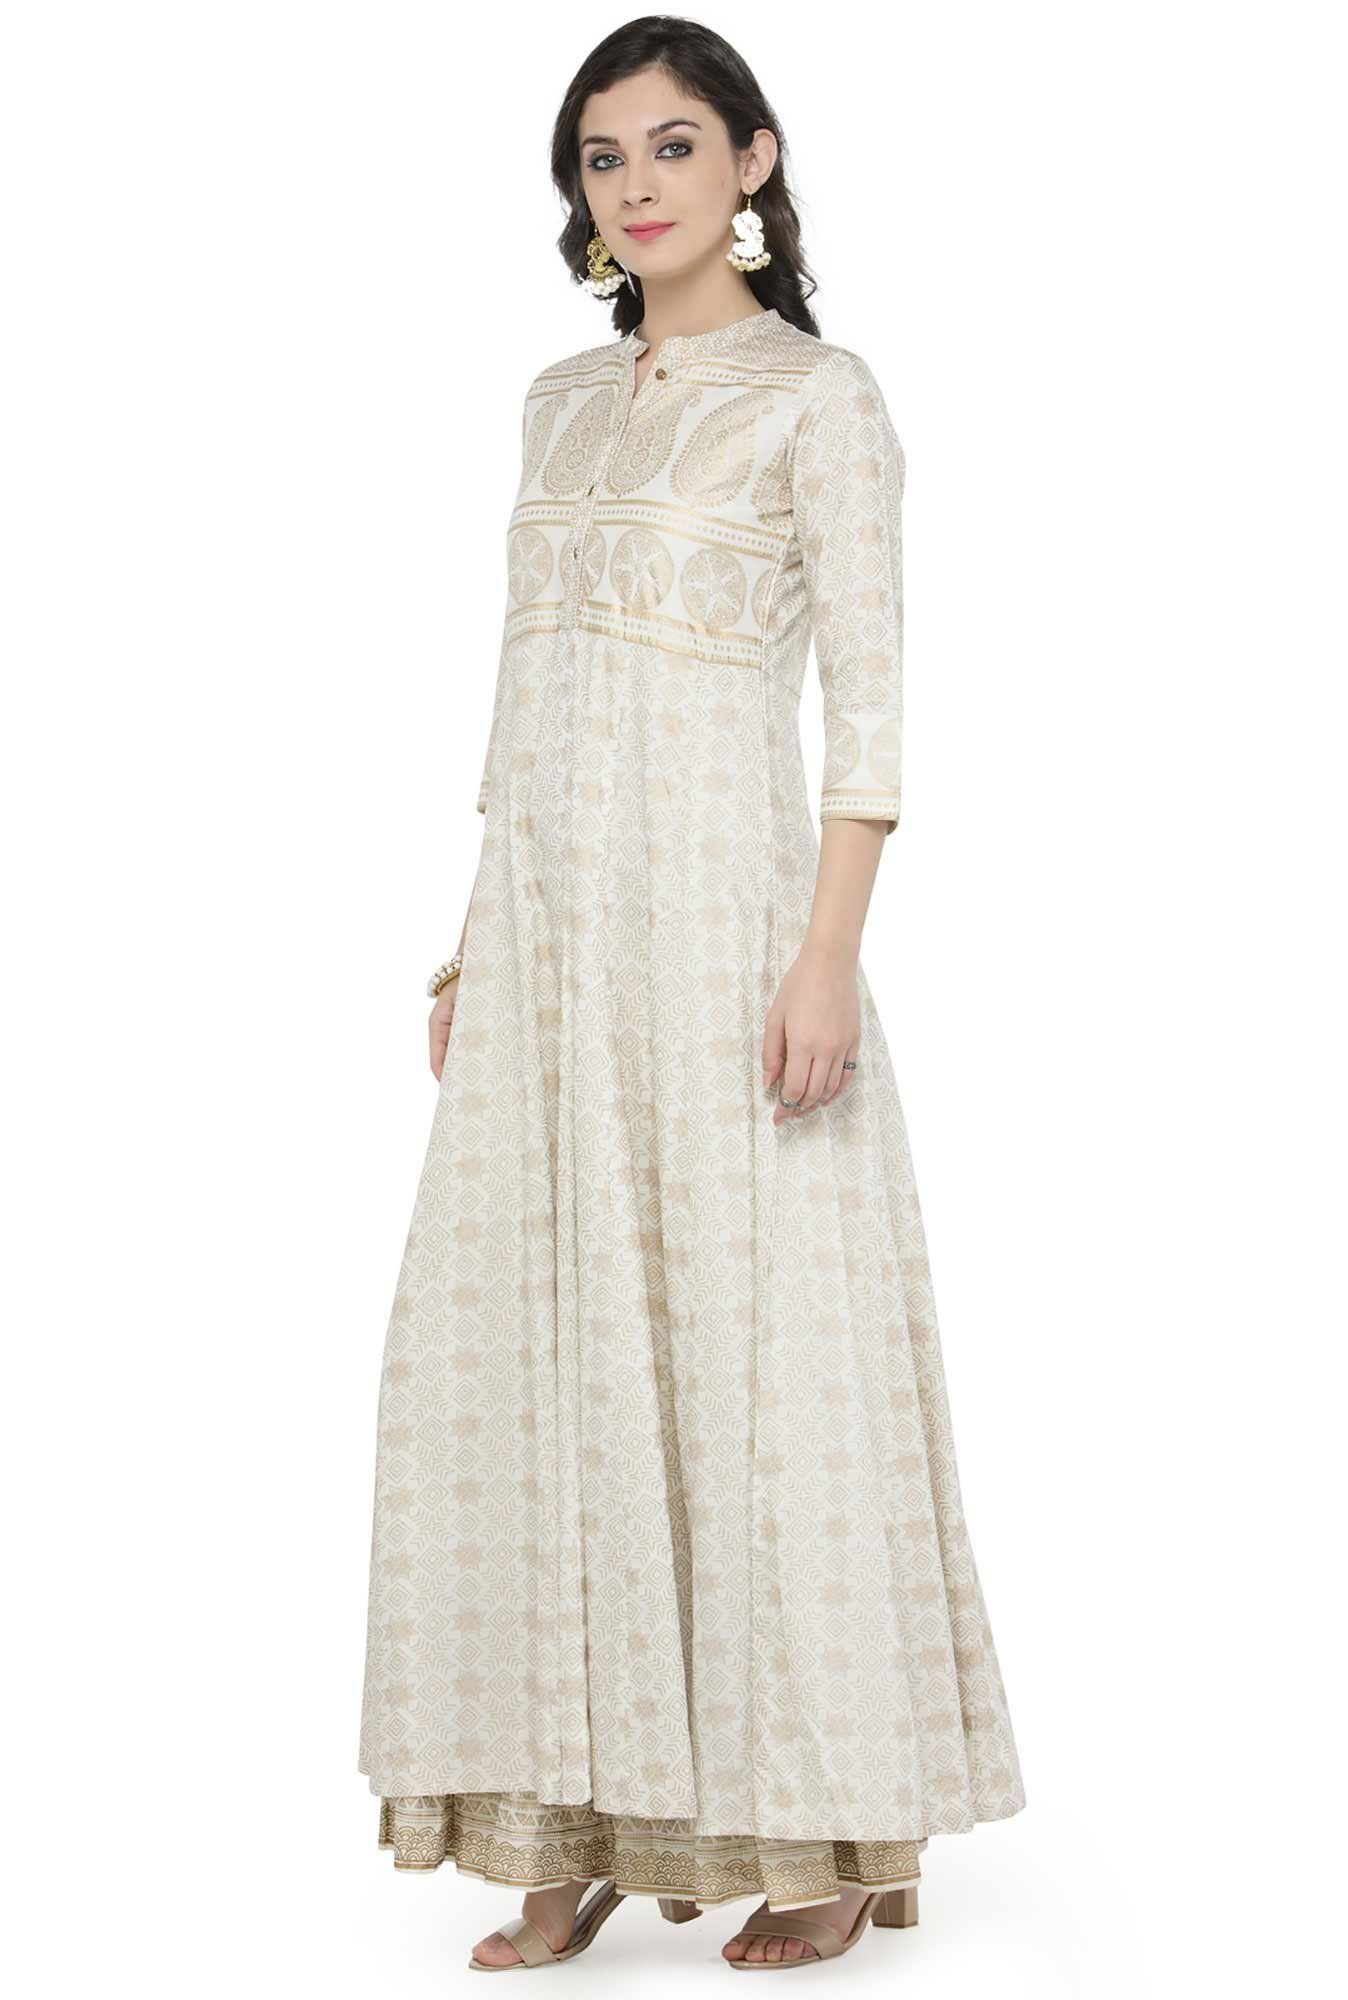 050e234ec1 Varanga Off White Viscose Rayon Kurta With Skirt | ClothMagic in ...